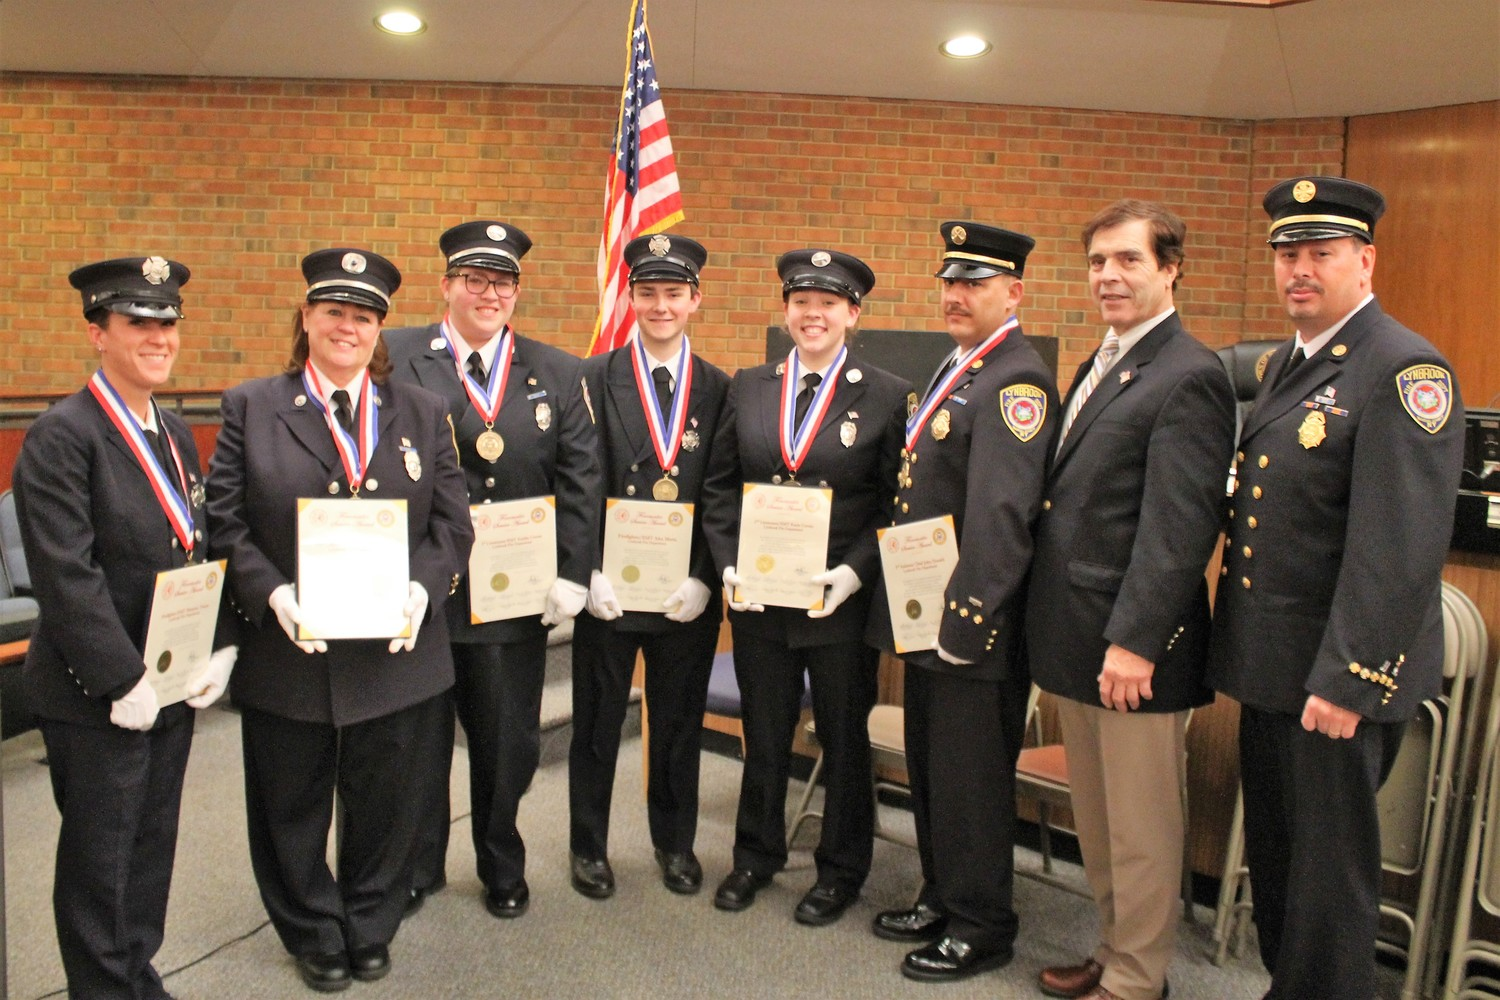 Six Lynbrook firefighters were honored by Hempstead Town Supervisor Laura Gillen for saving a Lynbrook woman's life in April. Above, from left, EMT Shannon Tracey, former Captain/EMT Cathy Bien, First Lieutenant/ EMT Kaitlyn Curran, Firefighter/EMT Alex Mertz, Second Lieutenant/EMT Kacie Curran, and Lynbrook Fire Department Third Assistant Chief John Donald with, from right, LFD Chief William Abrams, and Lynbrook Mayor Alan Beach.